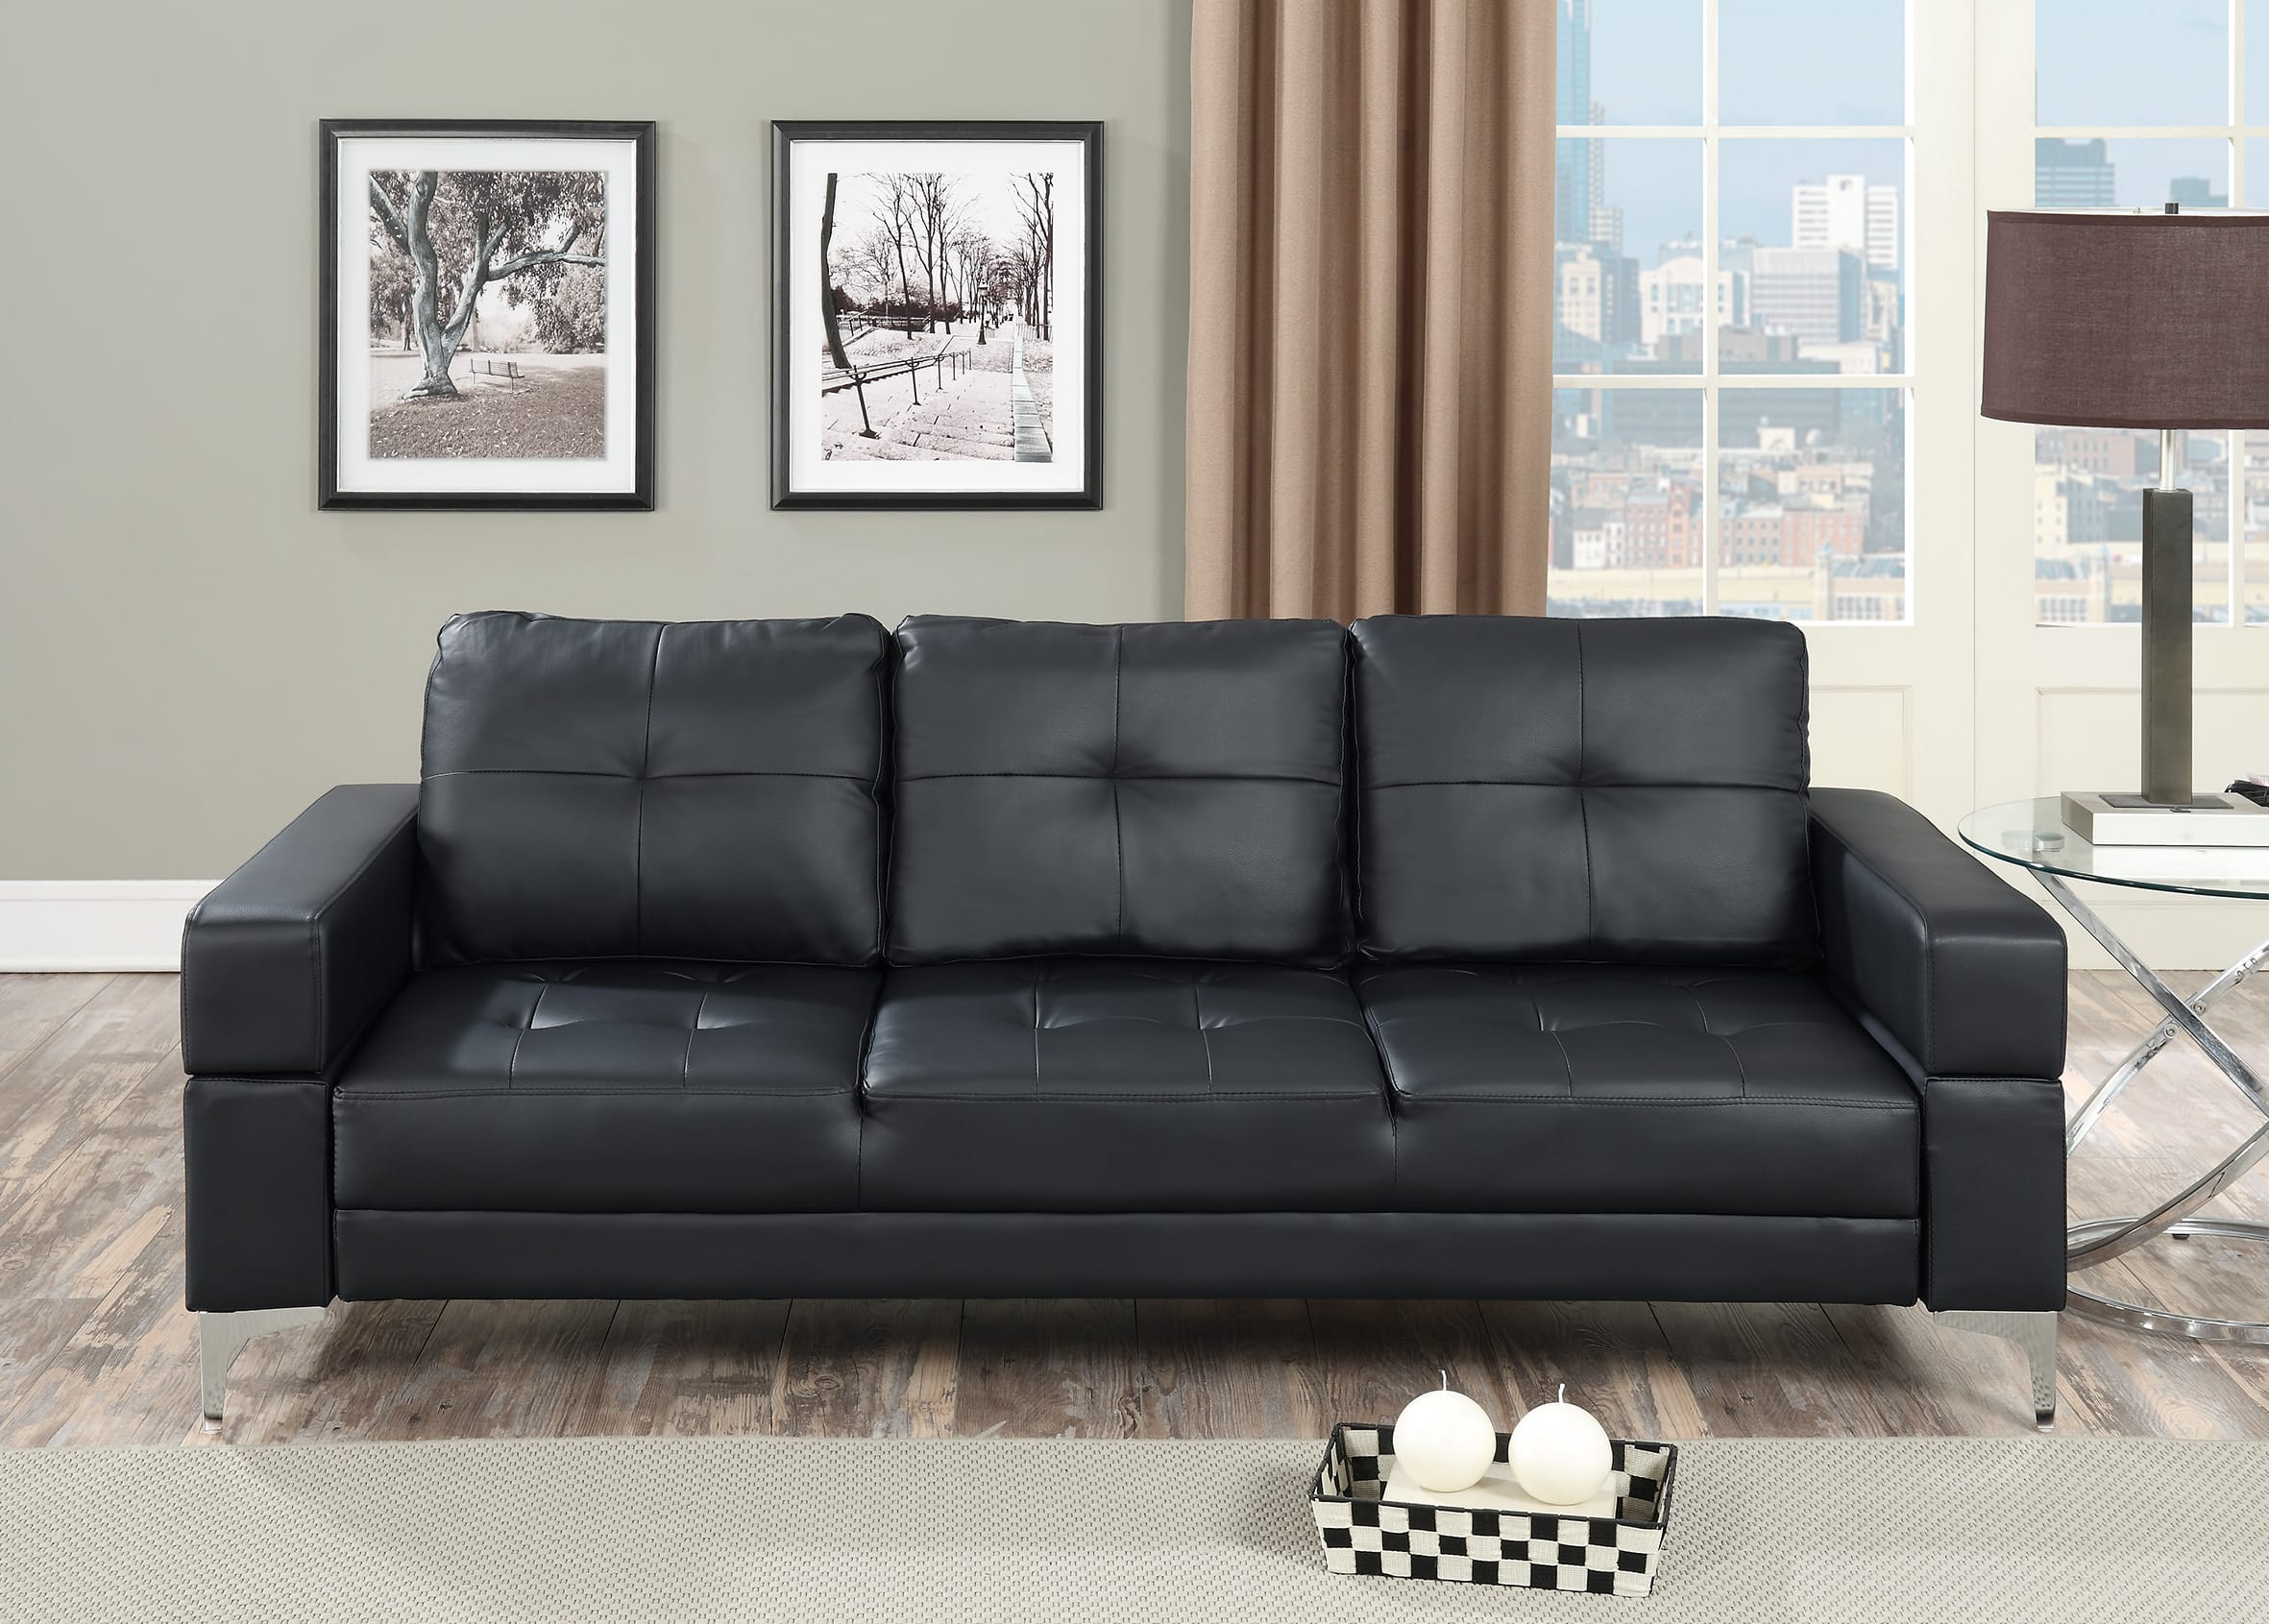 f6830 black convertible sofa bed by poundex poundex associates corporation